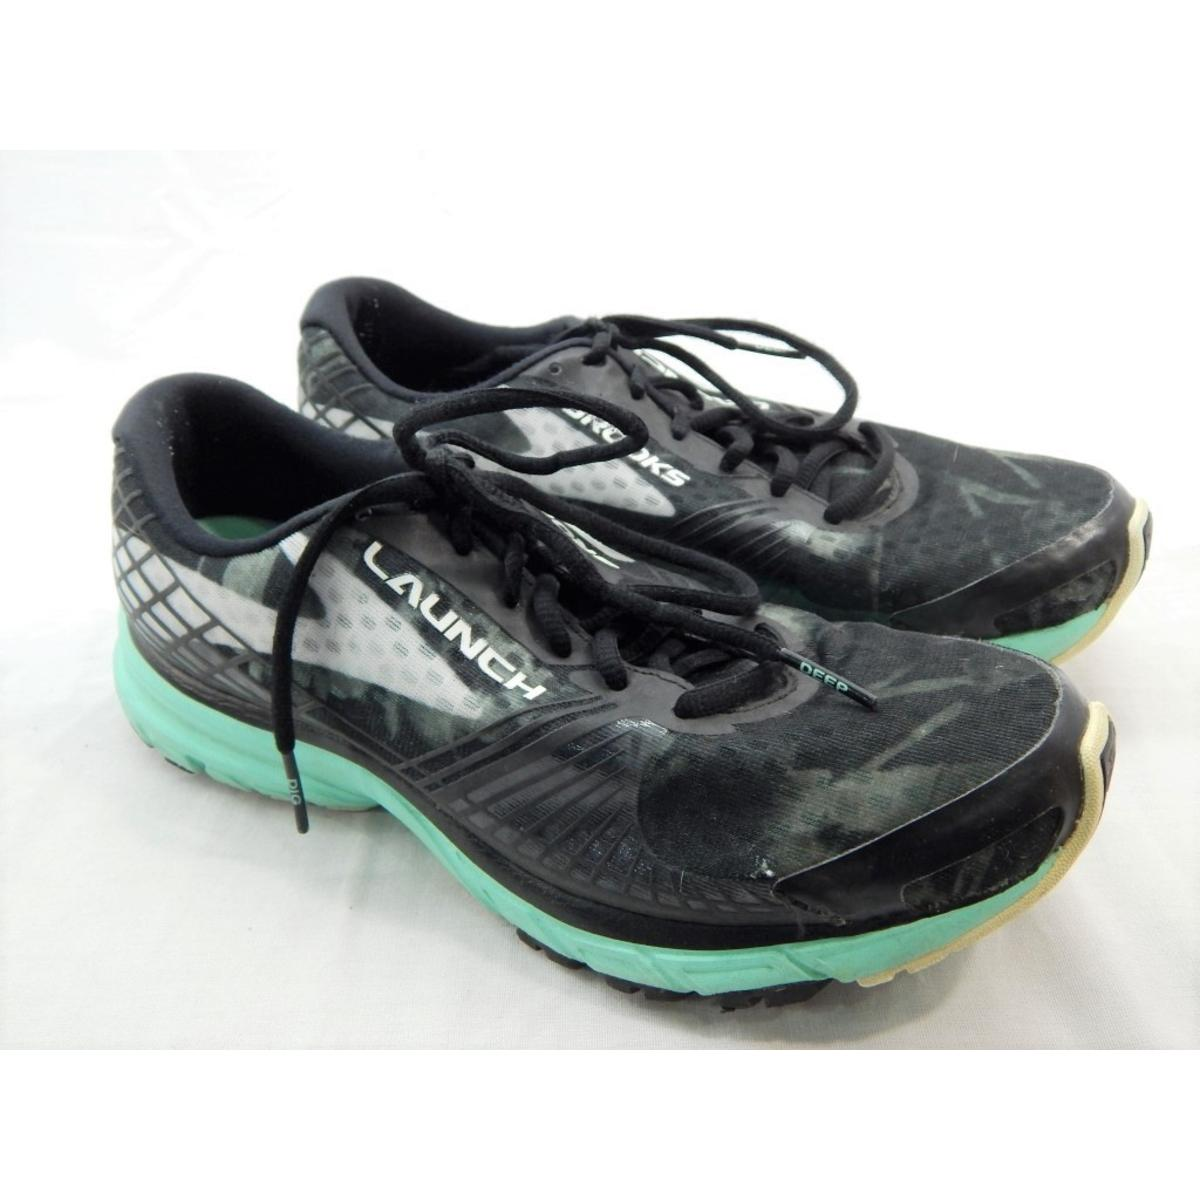 4ece06fcde9 Details about Brooks Women s Launch 3 Running Black White Ice Green Sneakers  10.5M